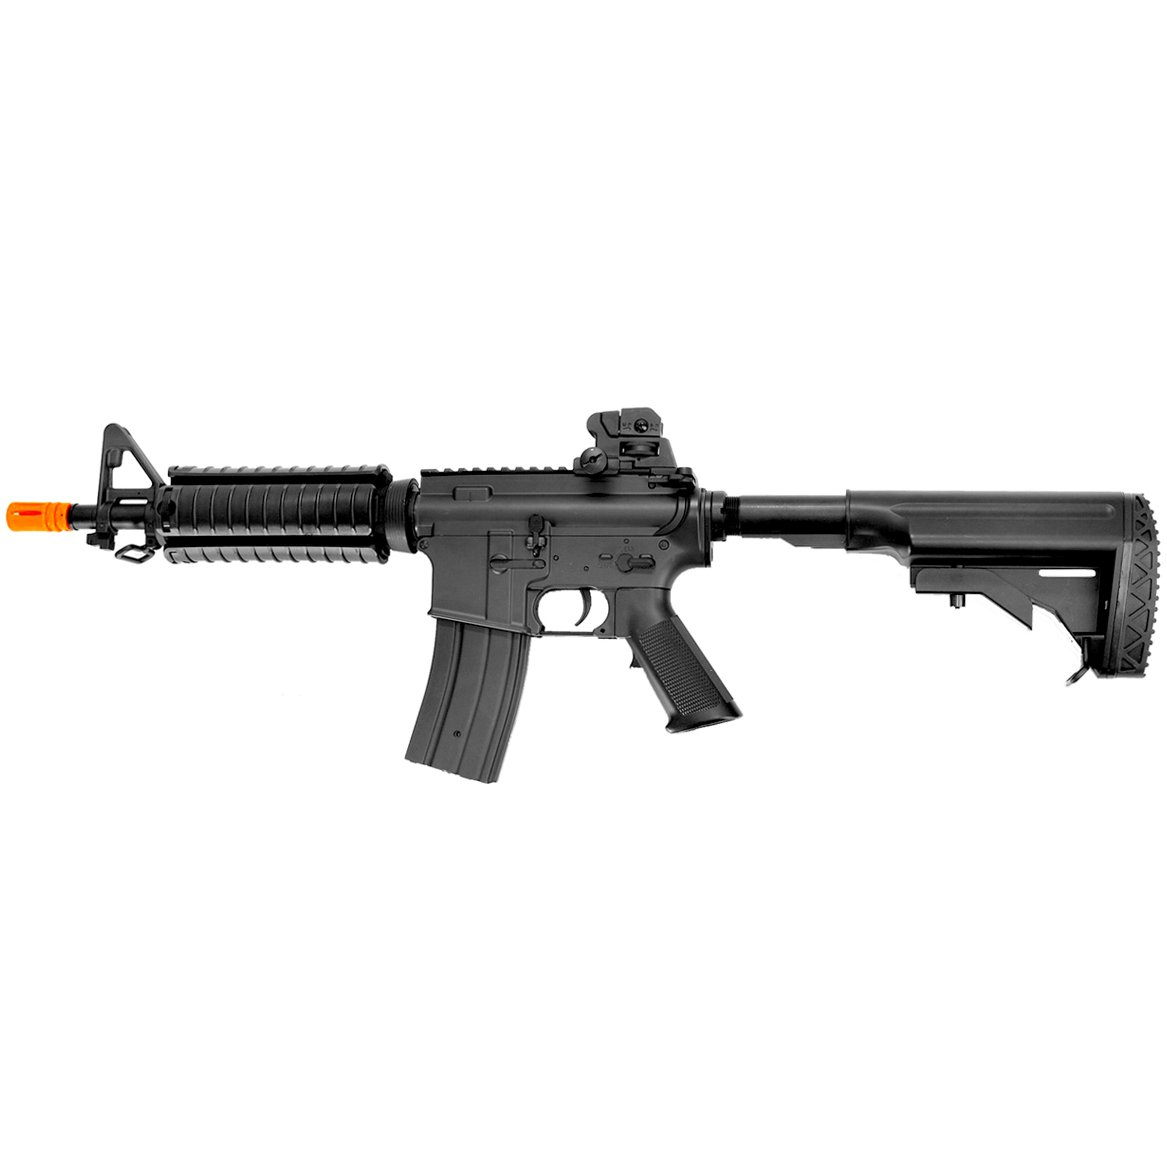 MetalTac JG FB-6624 Electric Airsoft Gun CQB with Rail Mounting System, Full Metal Body, Metal Gearbox Version 2, Auto AEG, Upgraded Powerful Spring 410 Fps with .20g BBs